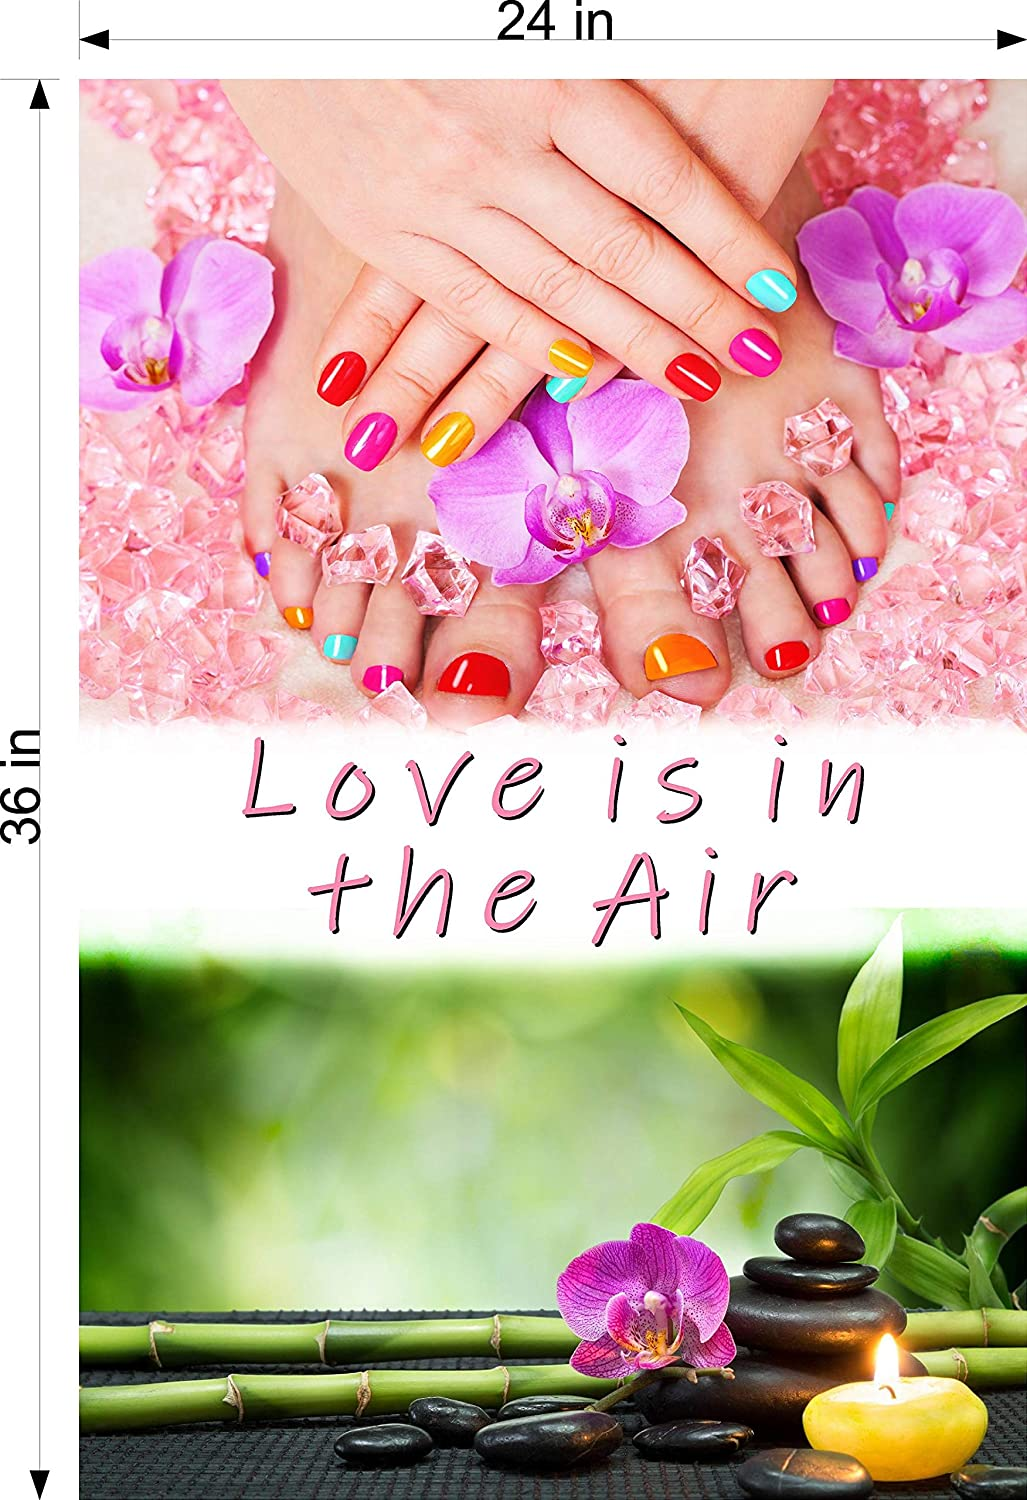 NAILSIGNS.com Reservation Quote X Love is in The Nail Air Super special price Adv Spa Salon Sign